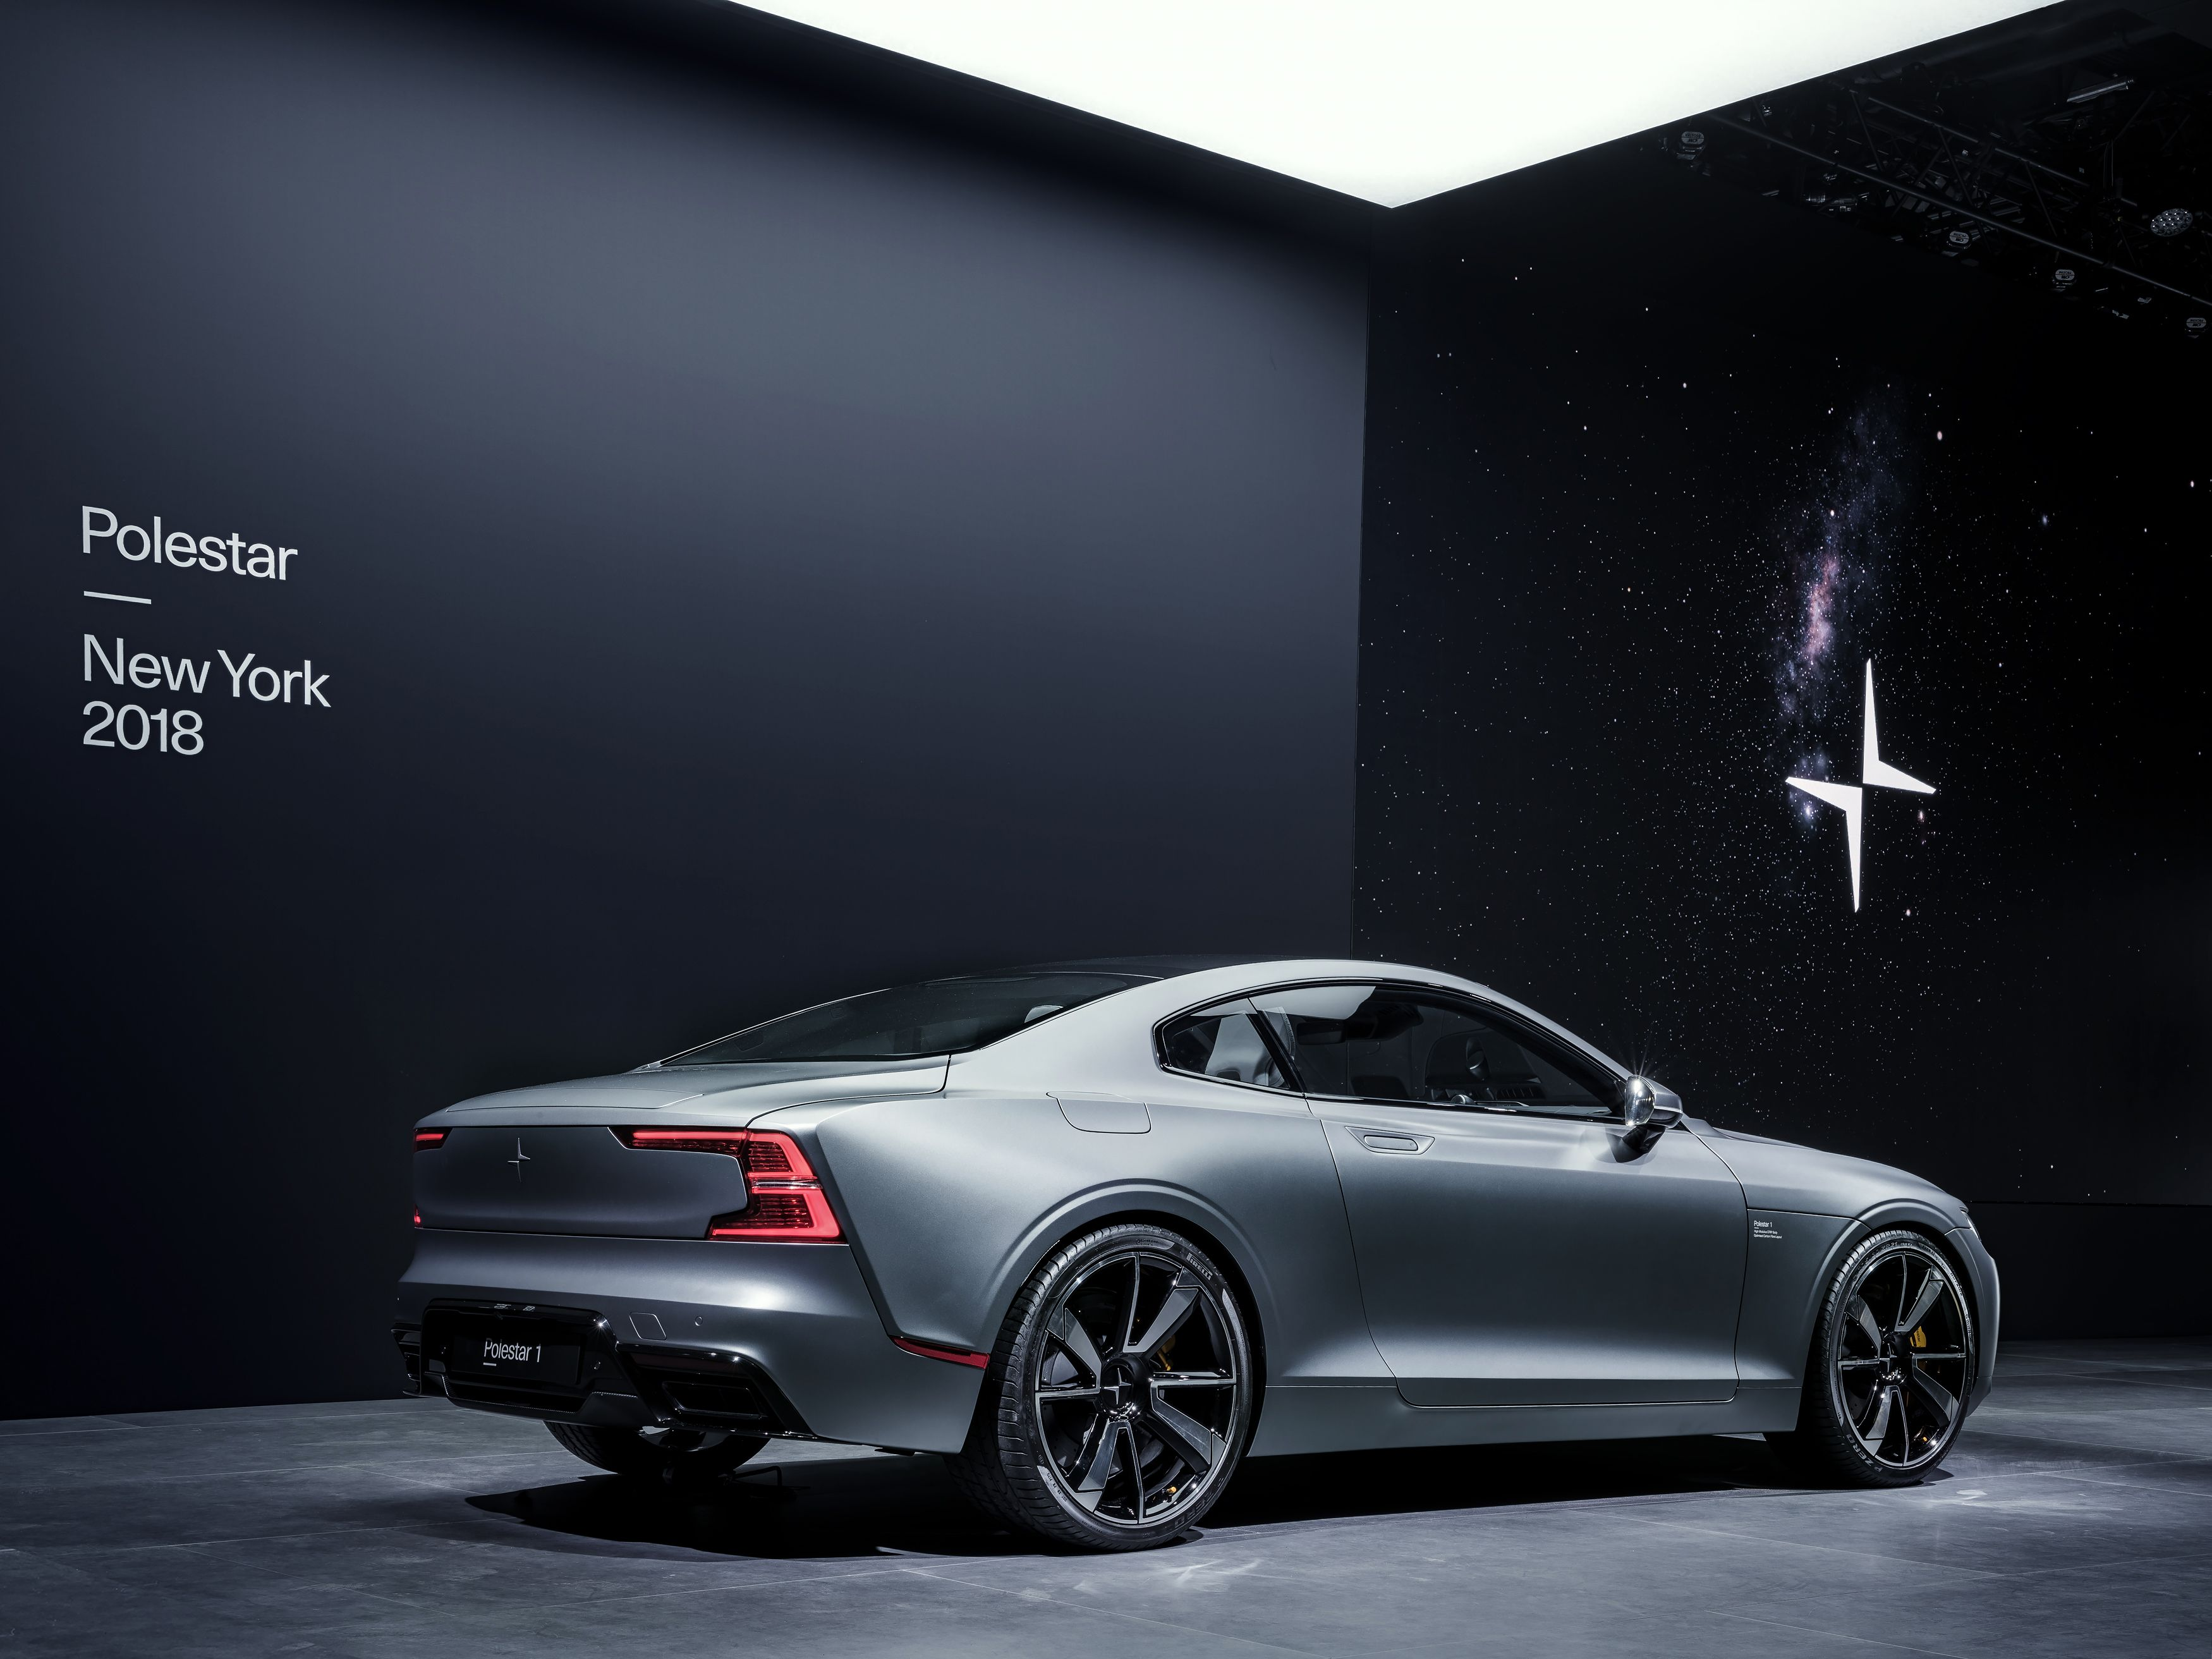 New Car Release >> Polestar The New Electric Performance Brand And A New Approach To